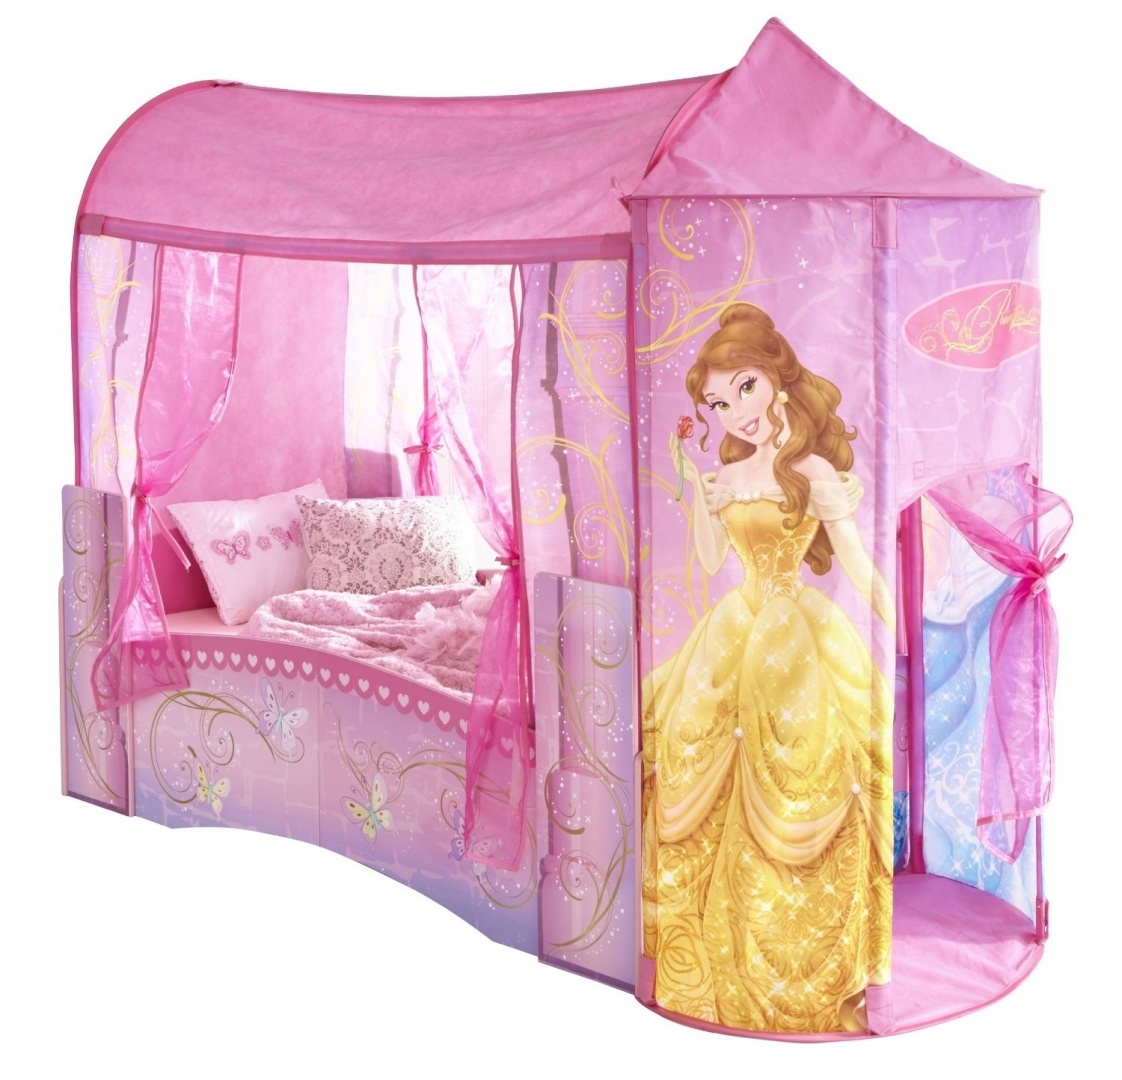 - Disney Princess Feature Toddler Bed By Disney Princess - Shop